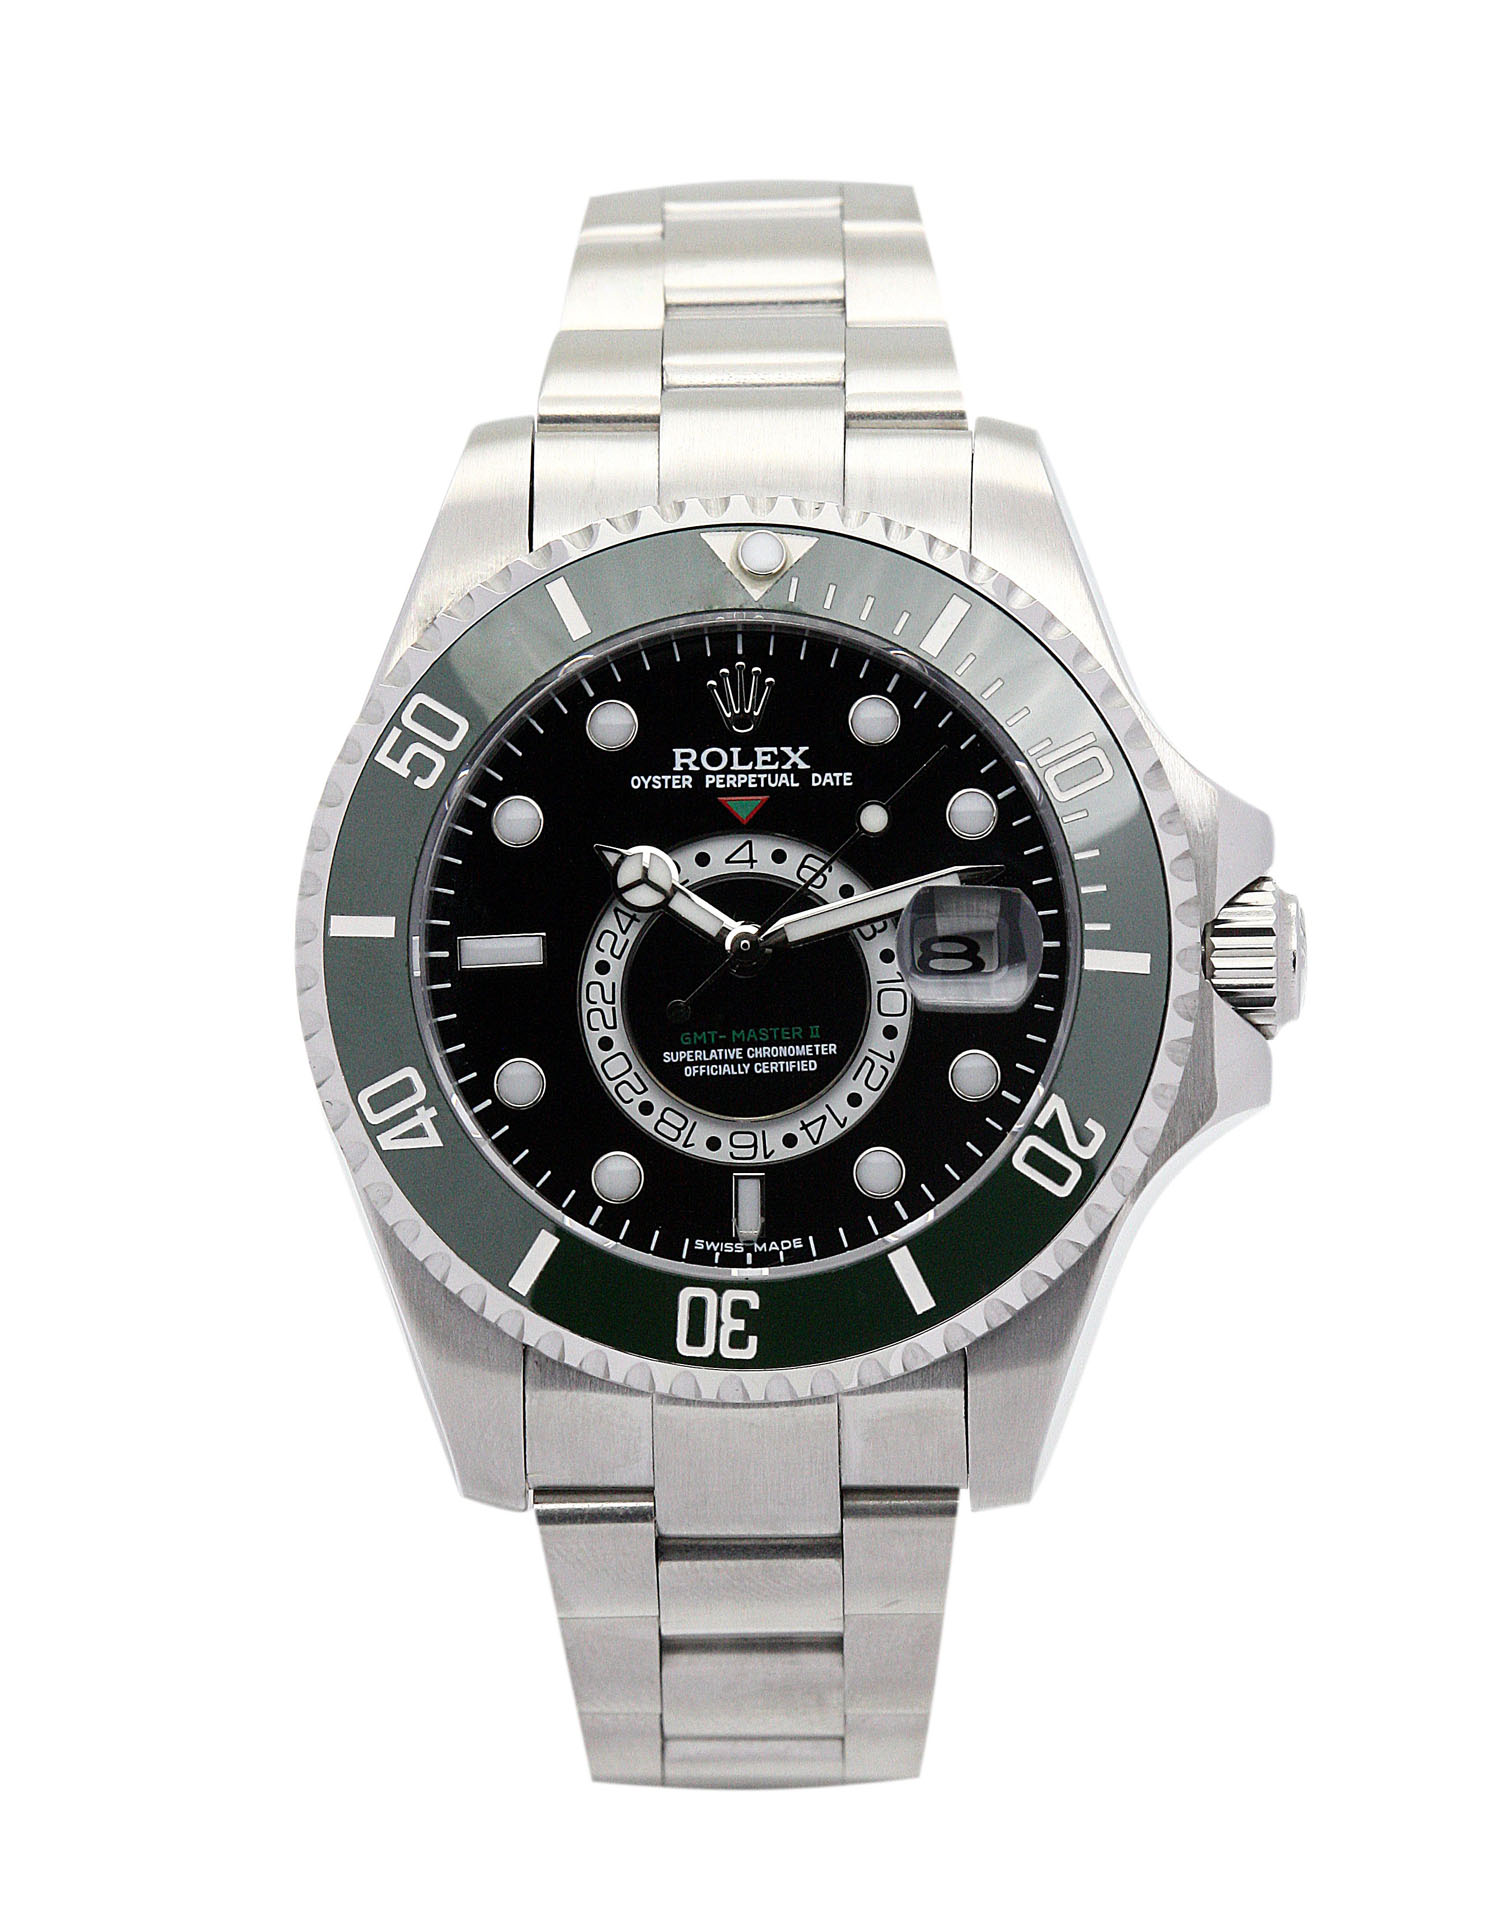 Rolex Gmt Master 16720 Men 40 Green Steel Case Automatic Movement – iapac.to